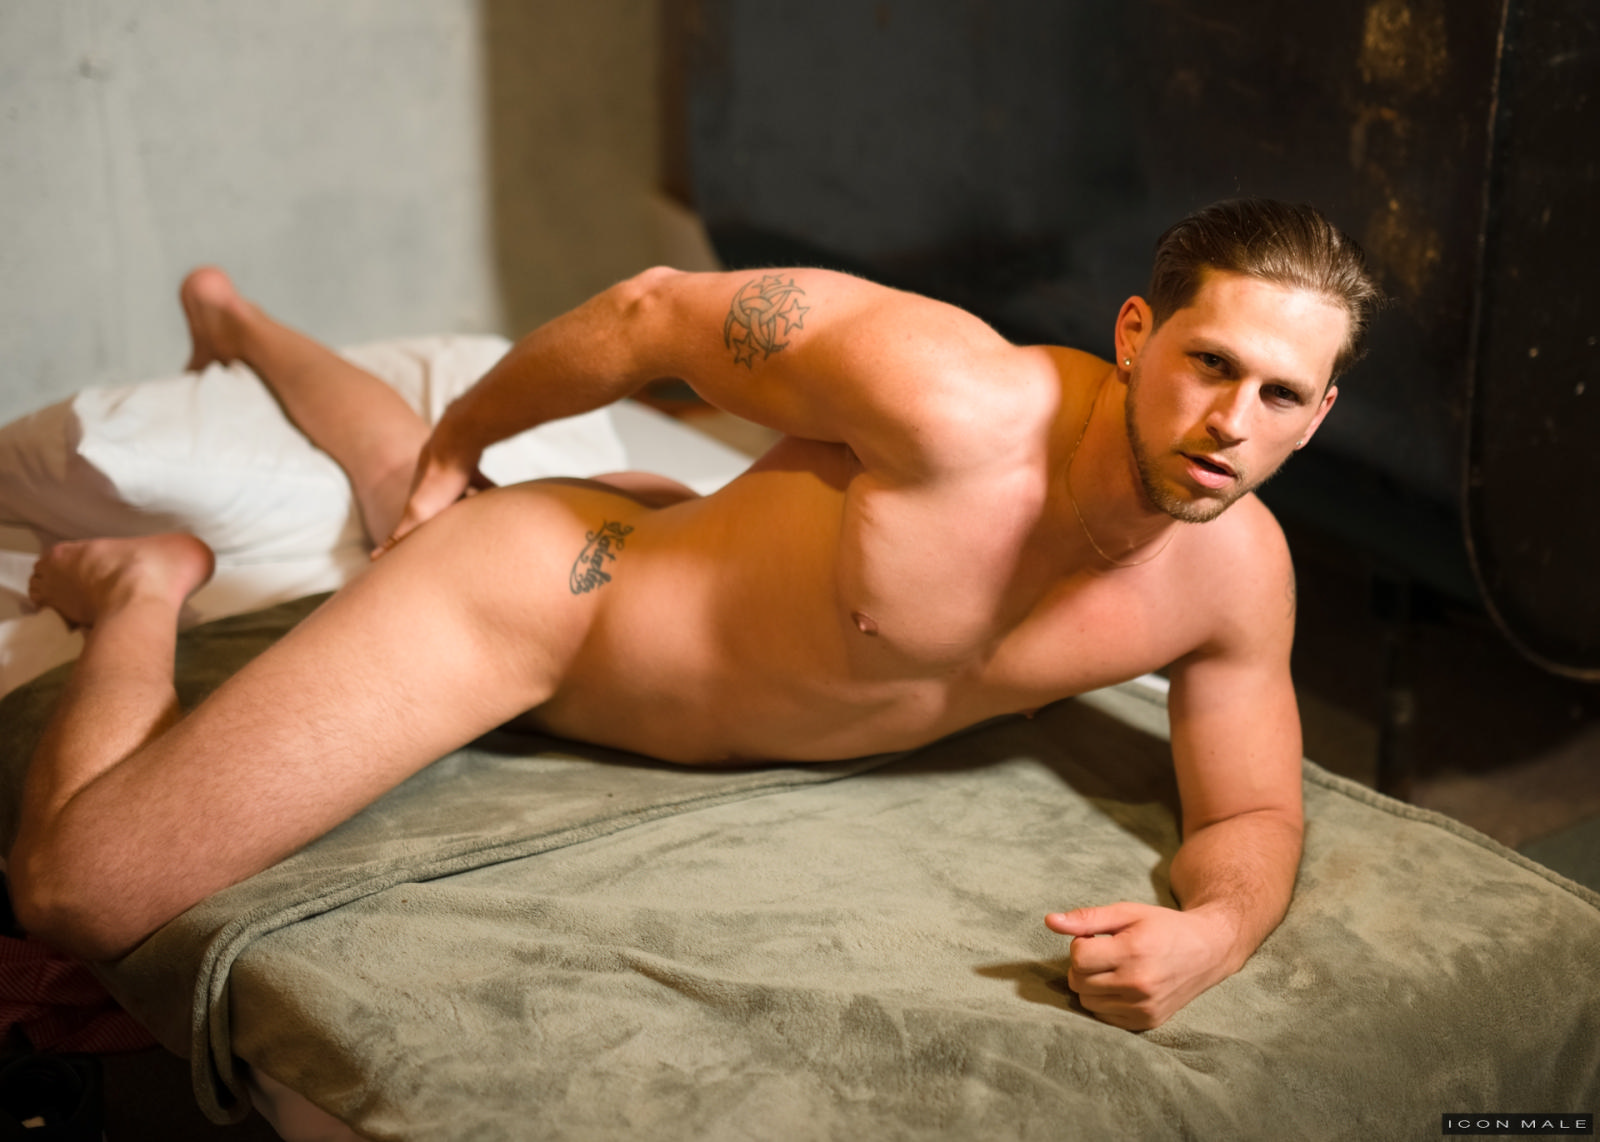 daddy escort gay escort venezia